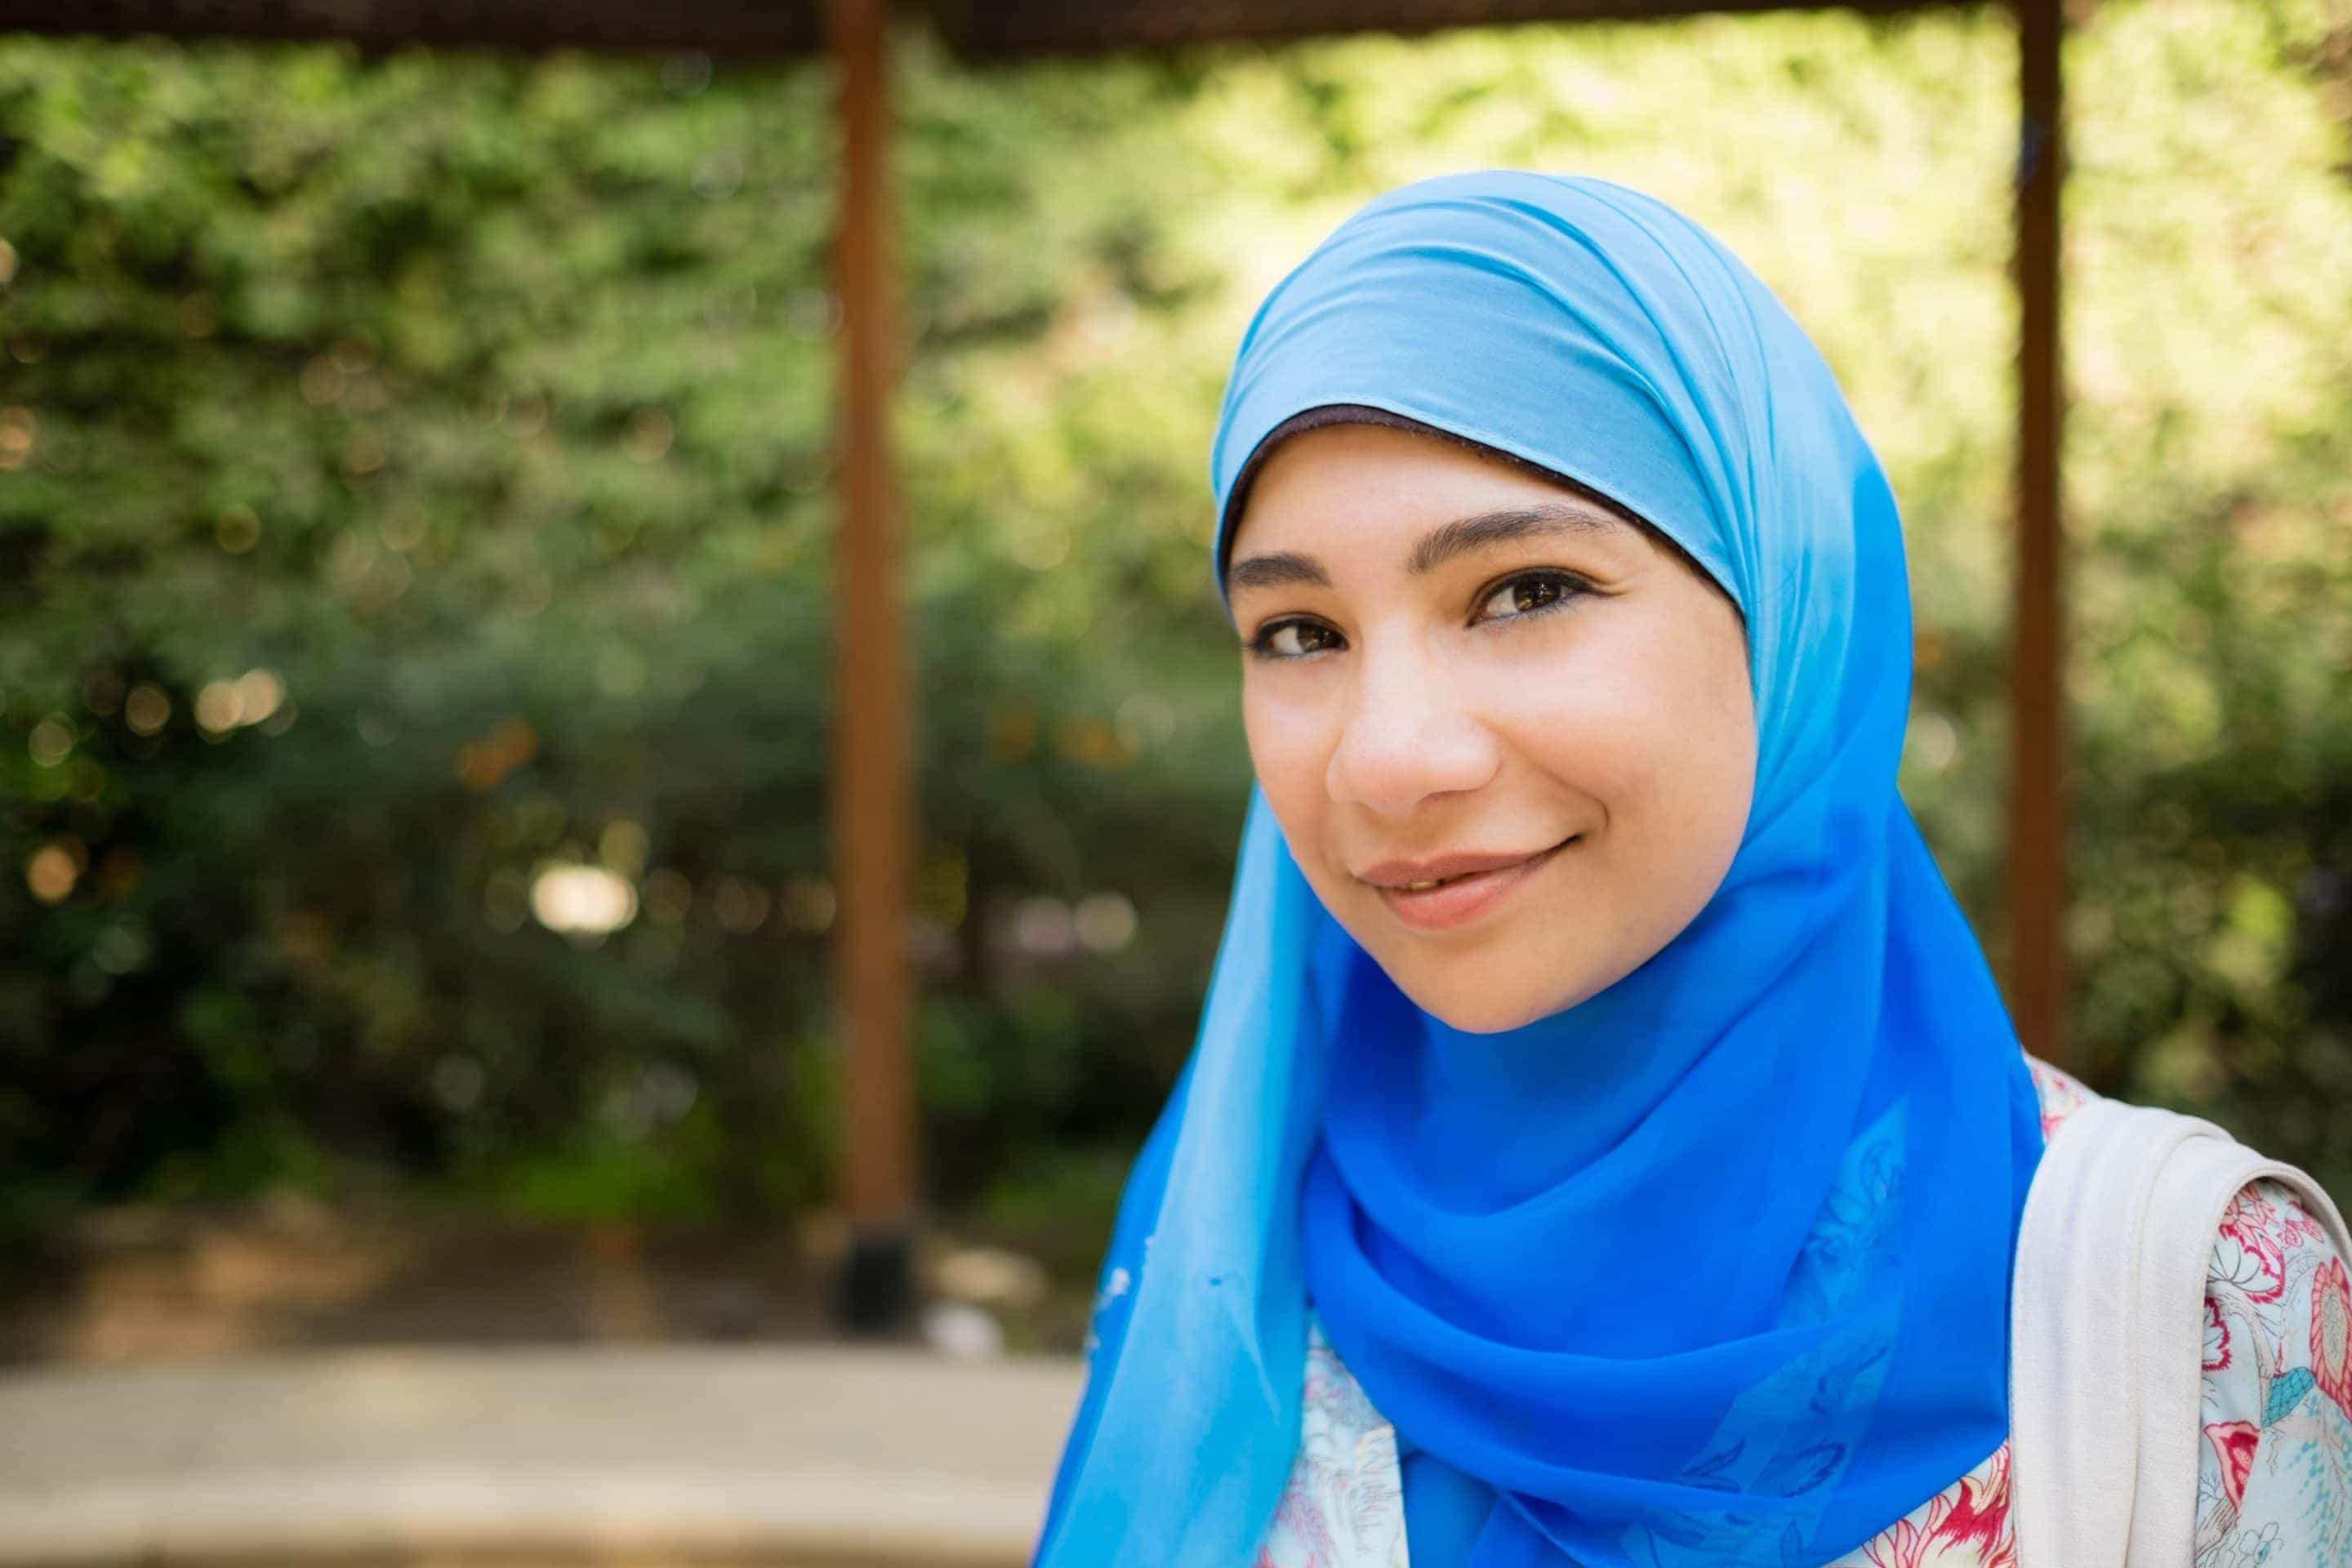 """middle eastern single women in east olympia People from different parts of the middle east act  woman and im dating a middle eastern  the 6 annoying dating habits of middle eastern men"""" on."""